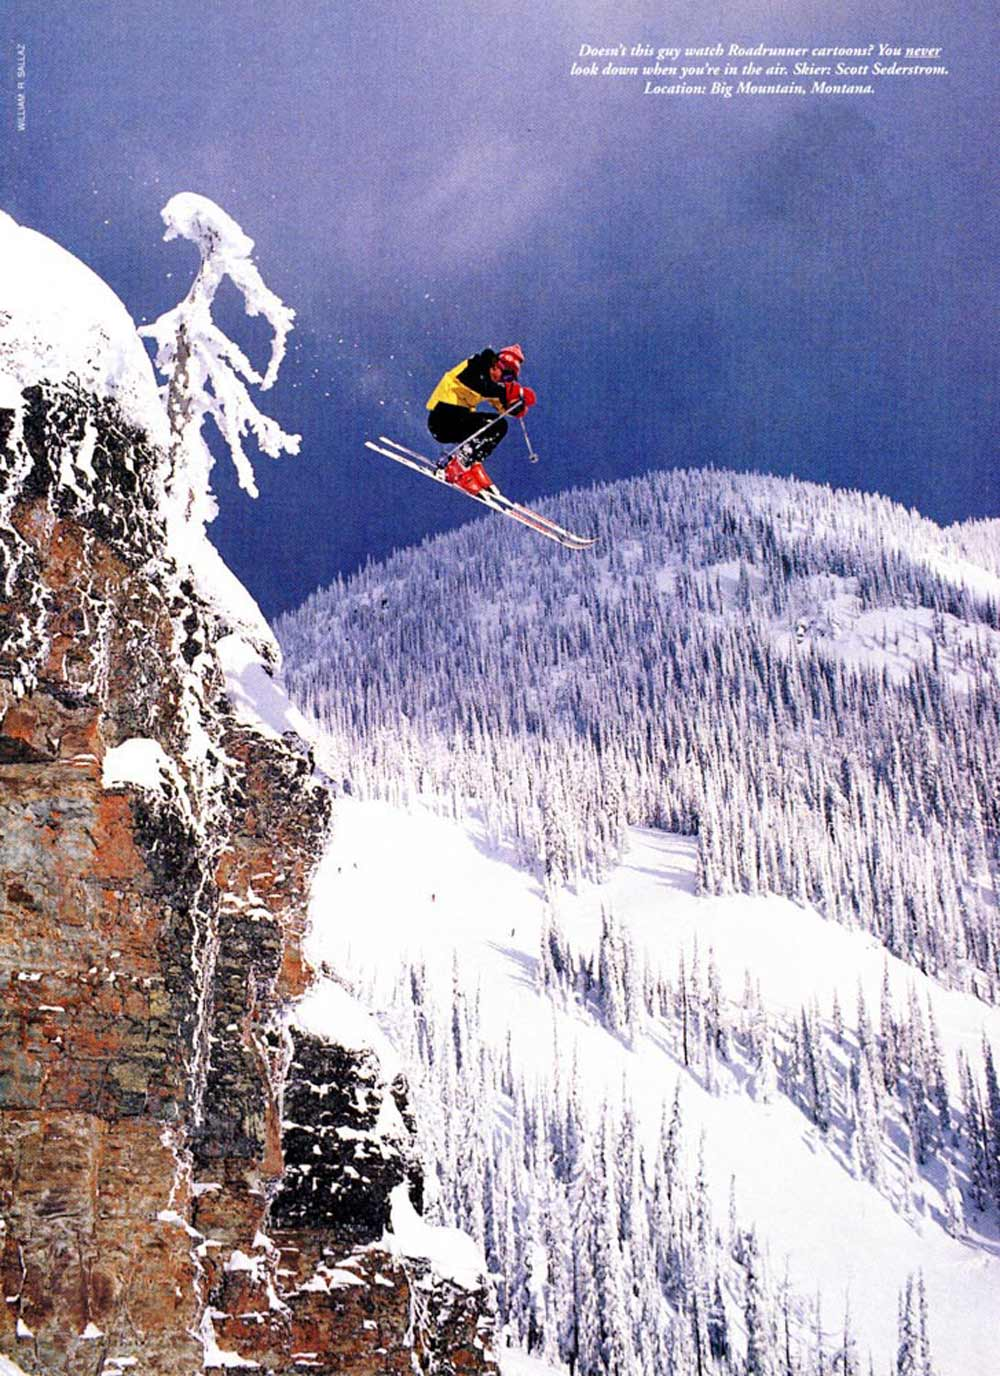 Scott Sederstrom ahead of his time in Whitefish, Montana. PHOTO: Bill Sallaz